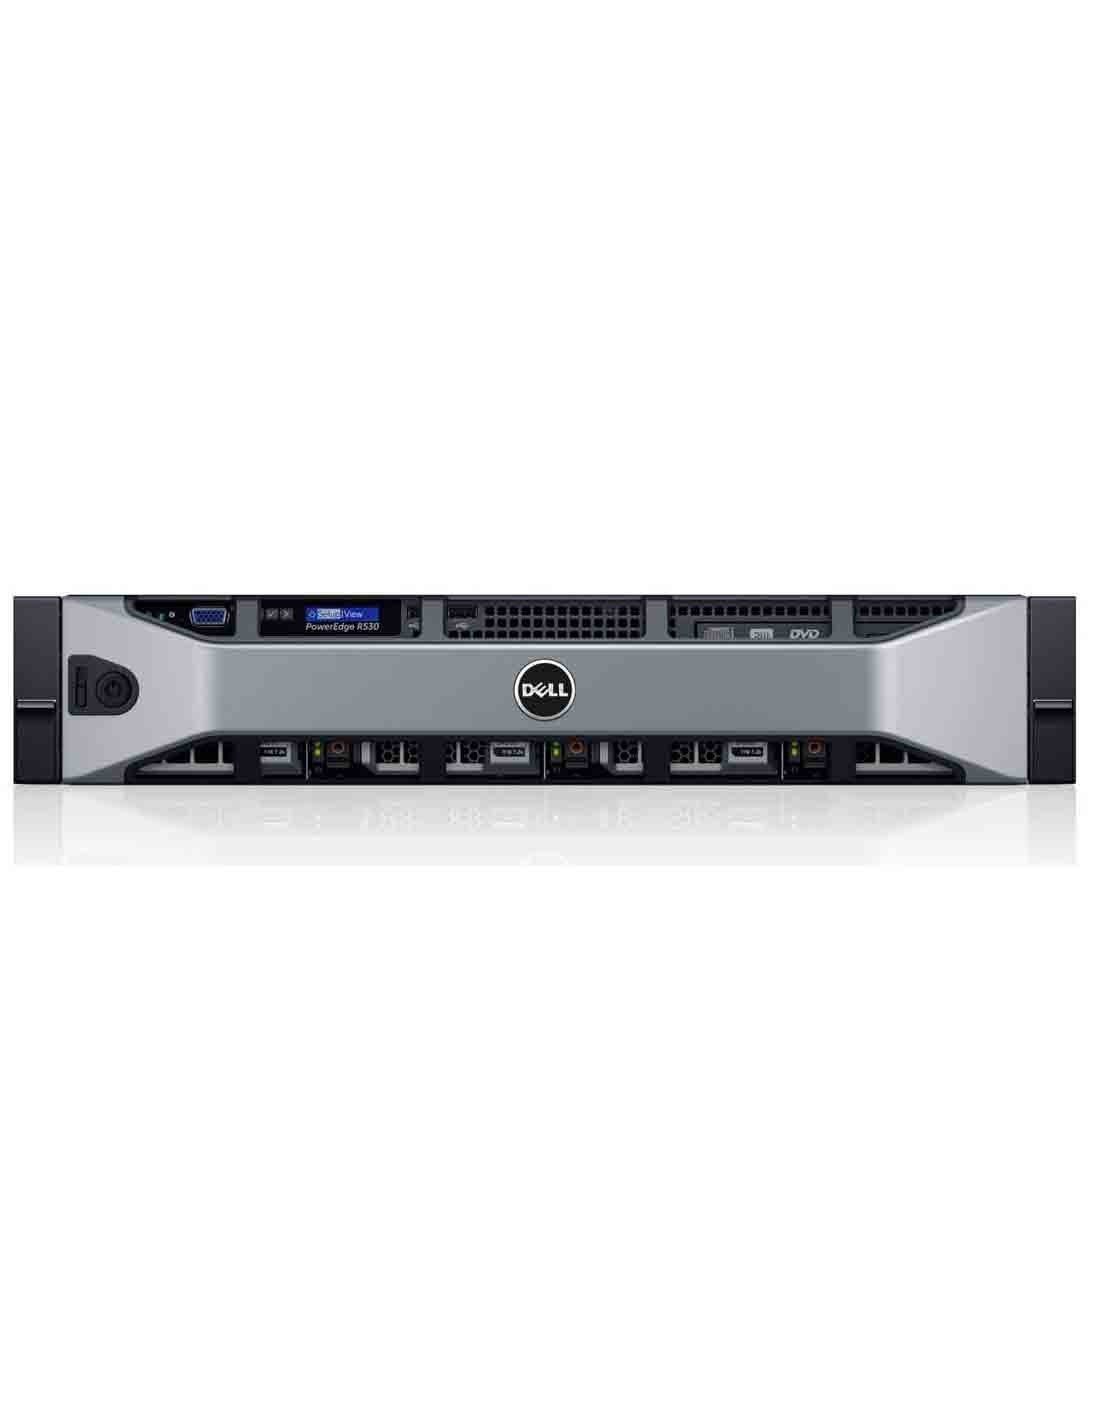 Dell PowerEdge R530 Rack Server at a Cheap Price in Dubai